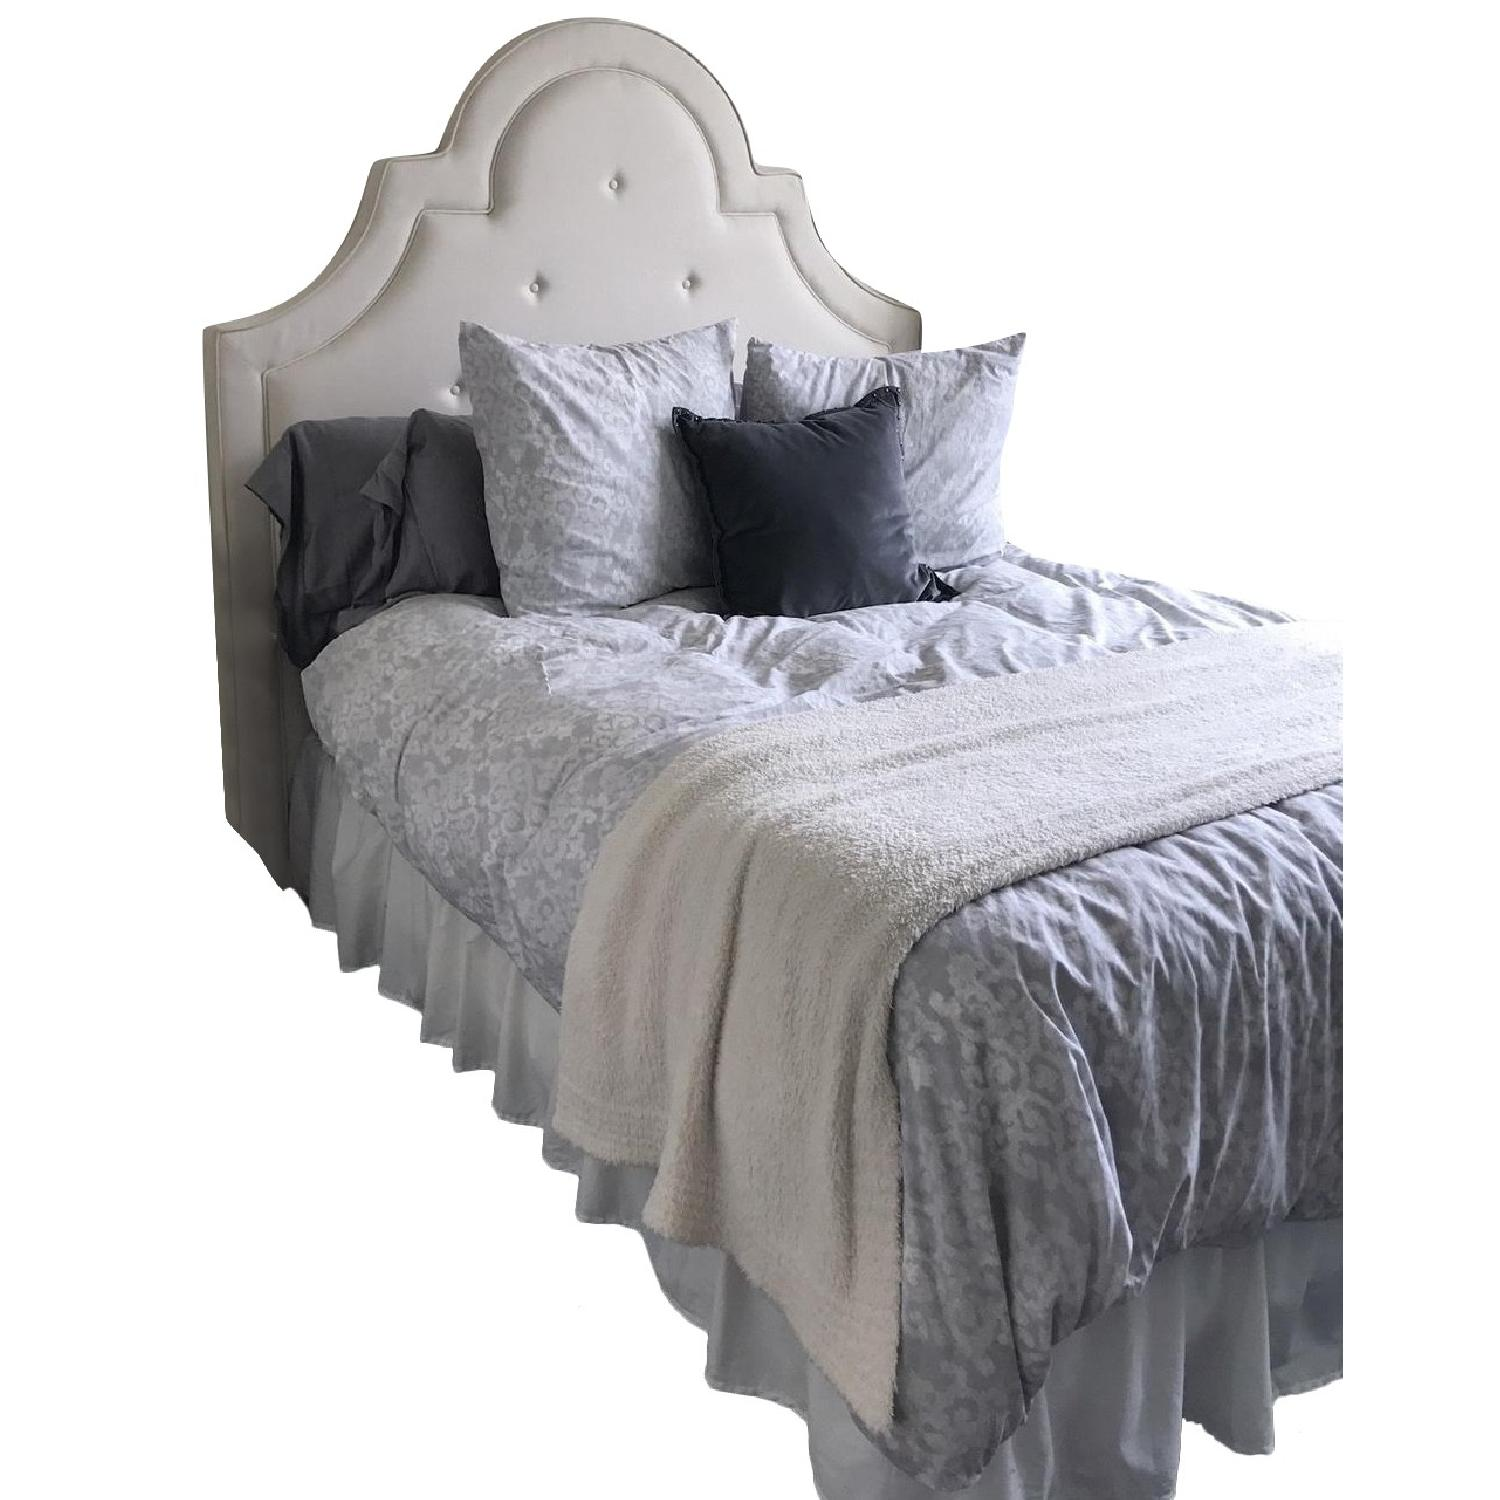 Pottery Barn Queen Bed Frame w/ Headboard